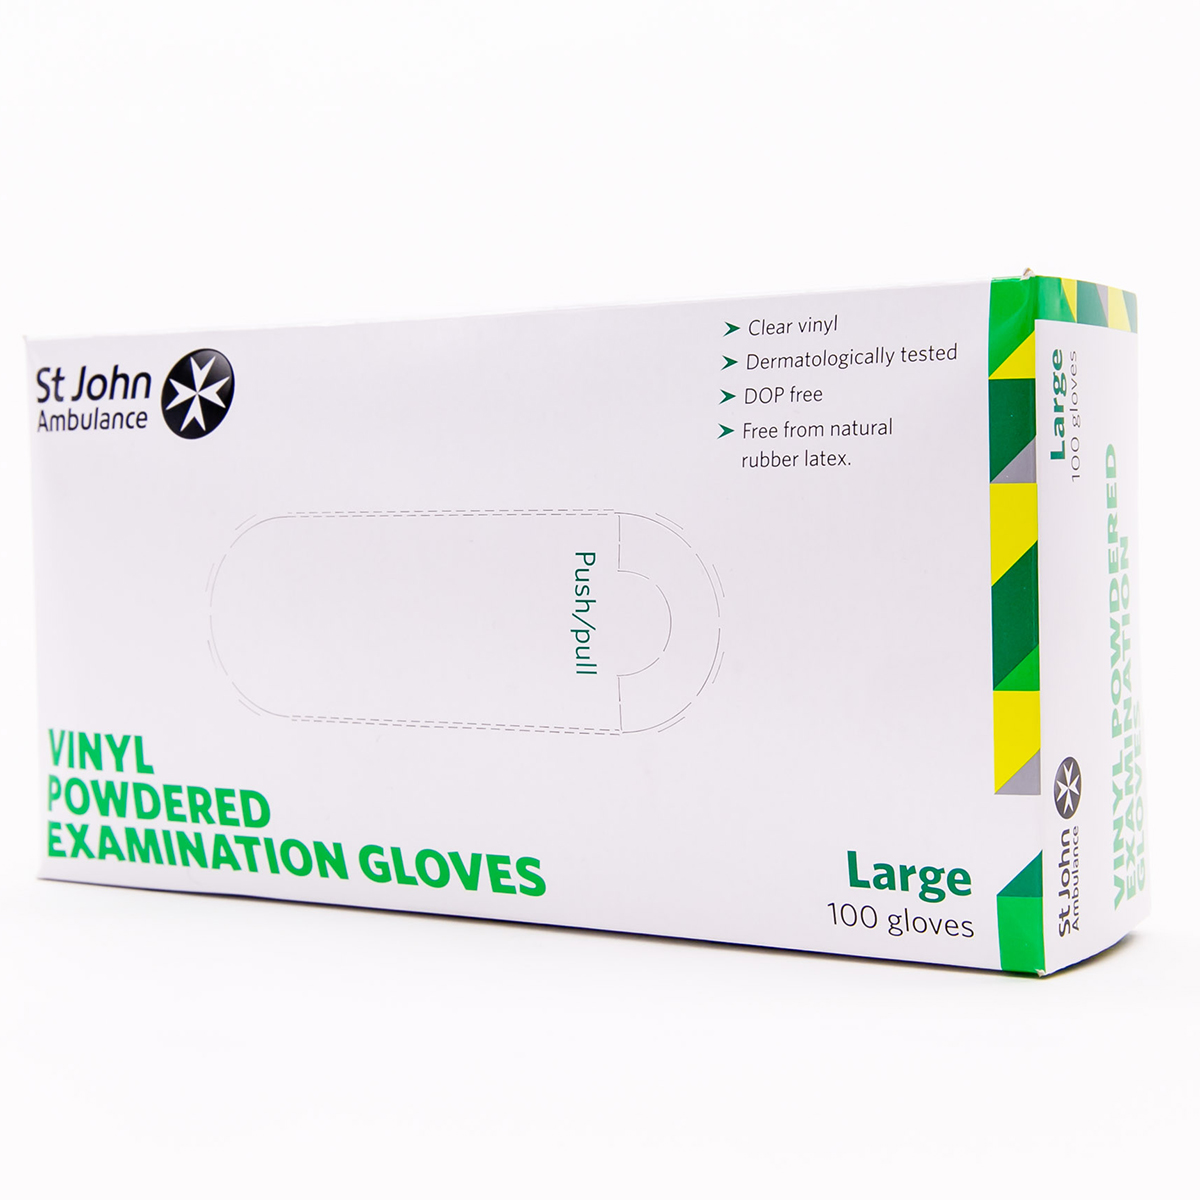 Box of 100 Large St John Ambulance Vinyl Pre-Powdered Gloves